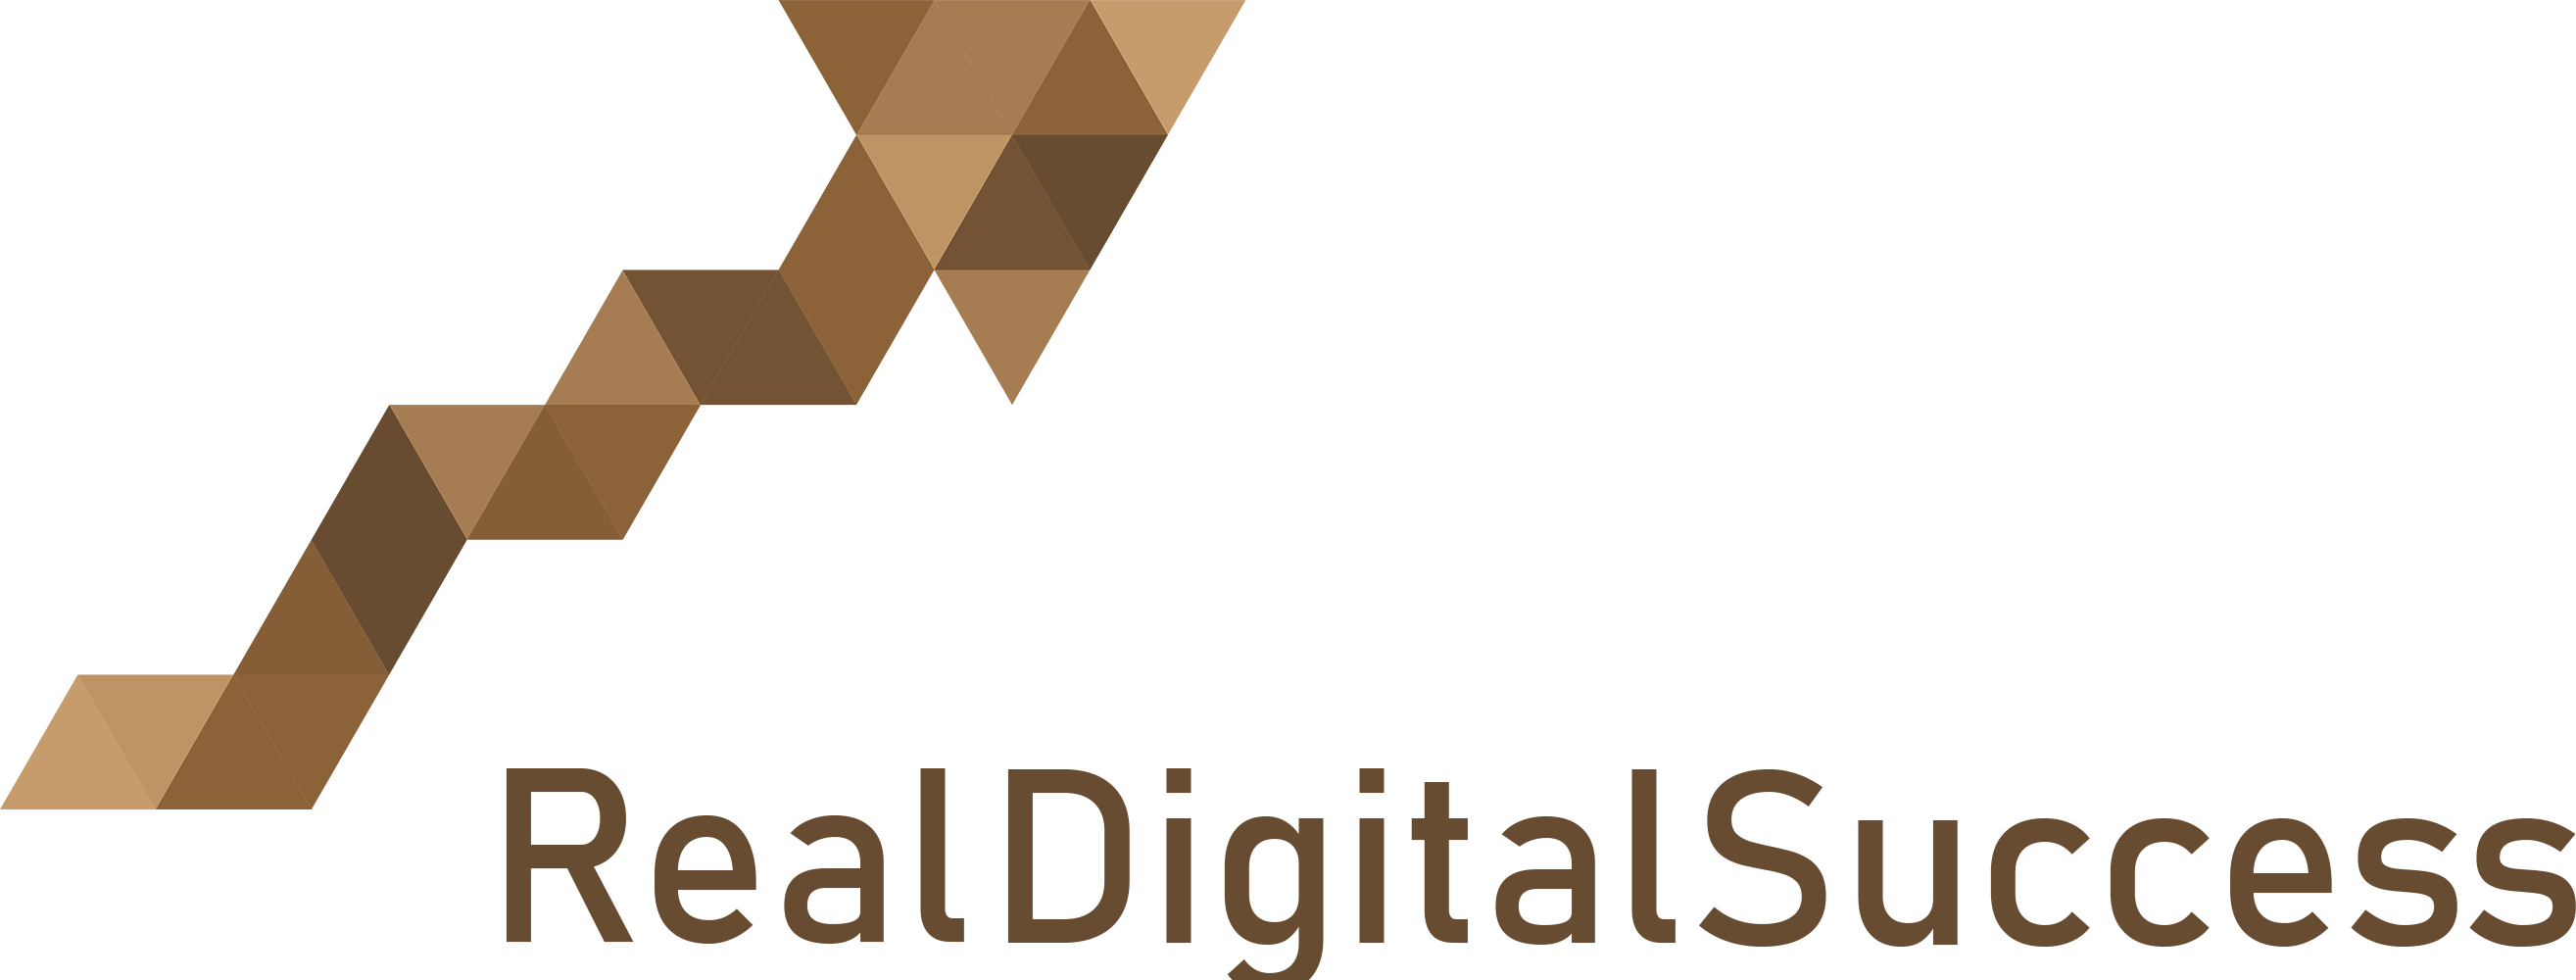 Real digital Success logo